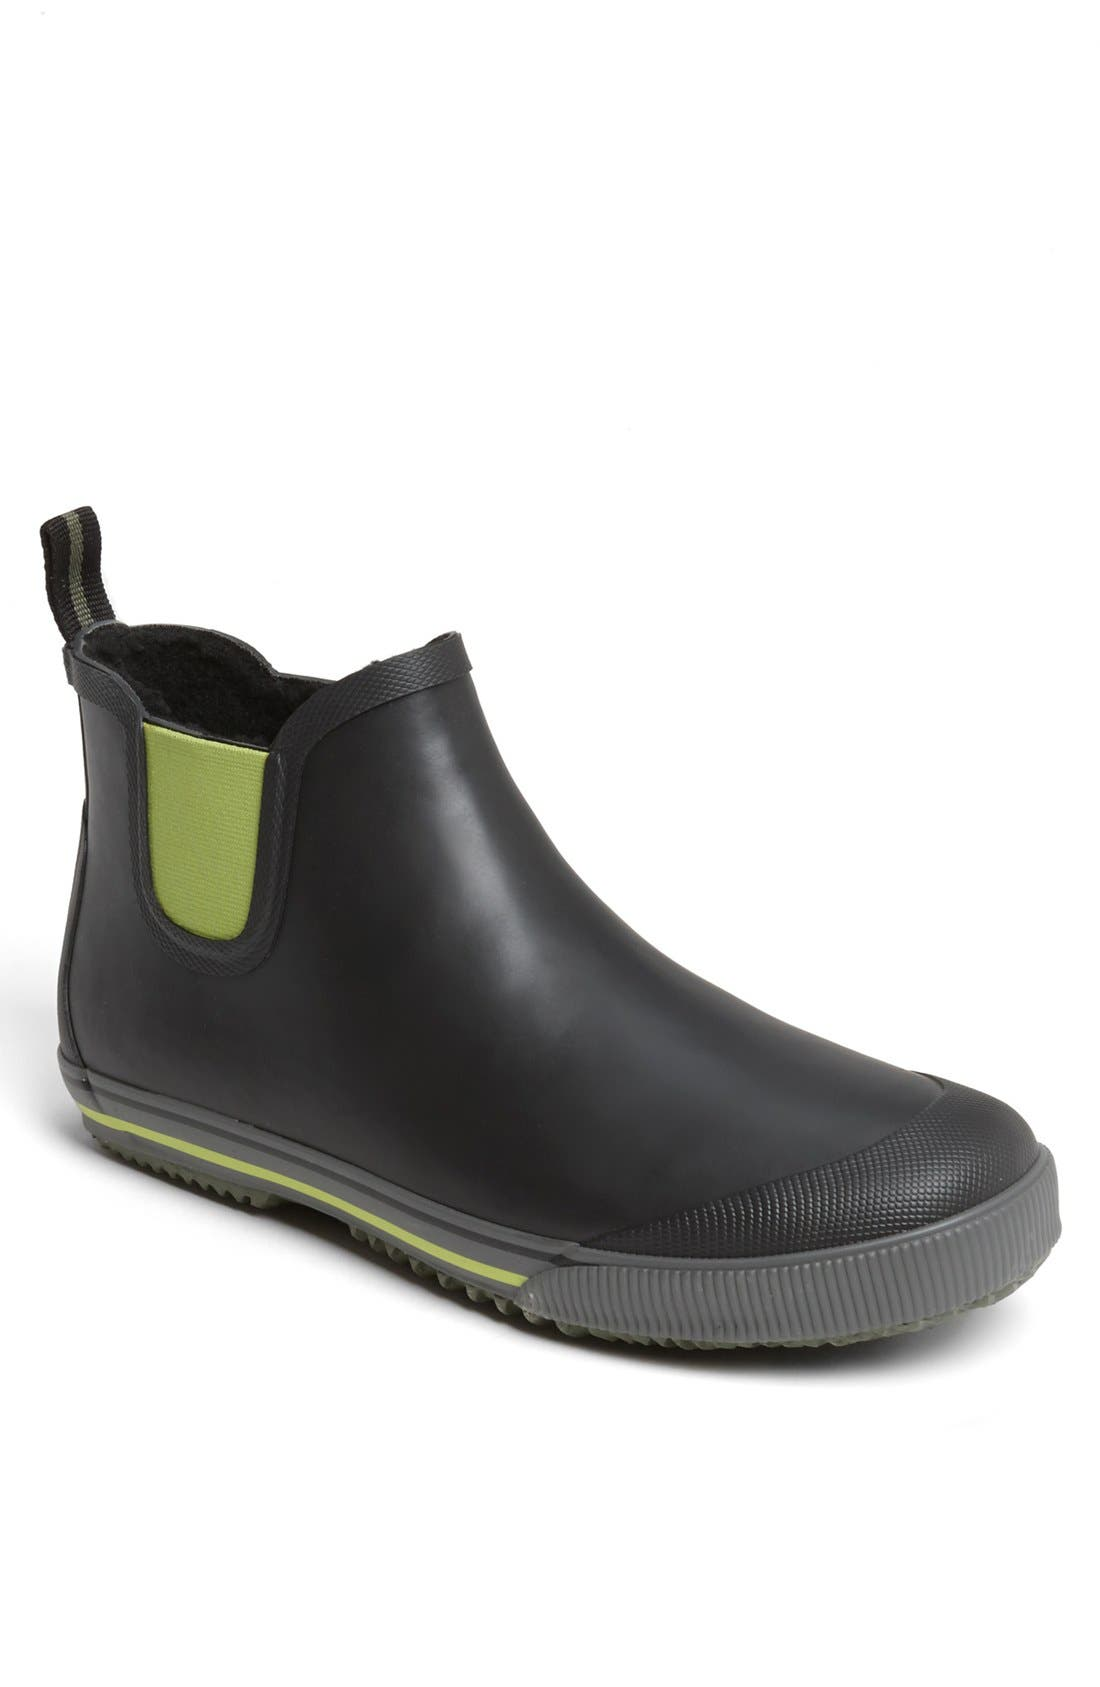 Alternate Image 1 Selected - Tretorn 'Stråla Vinter' Rain Boot (Online Only)